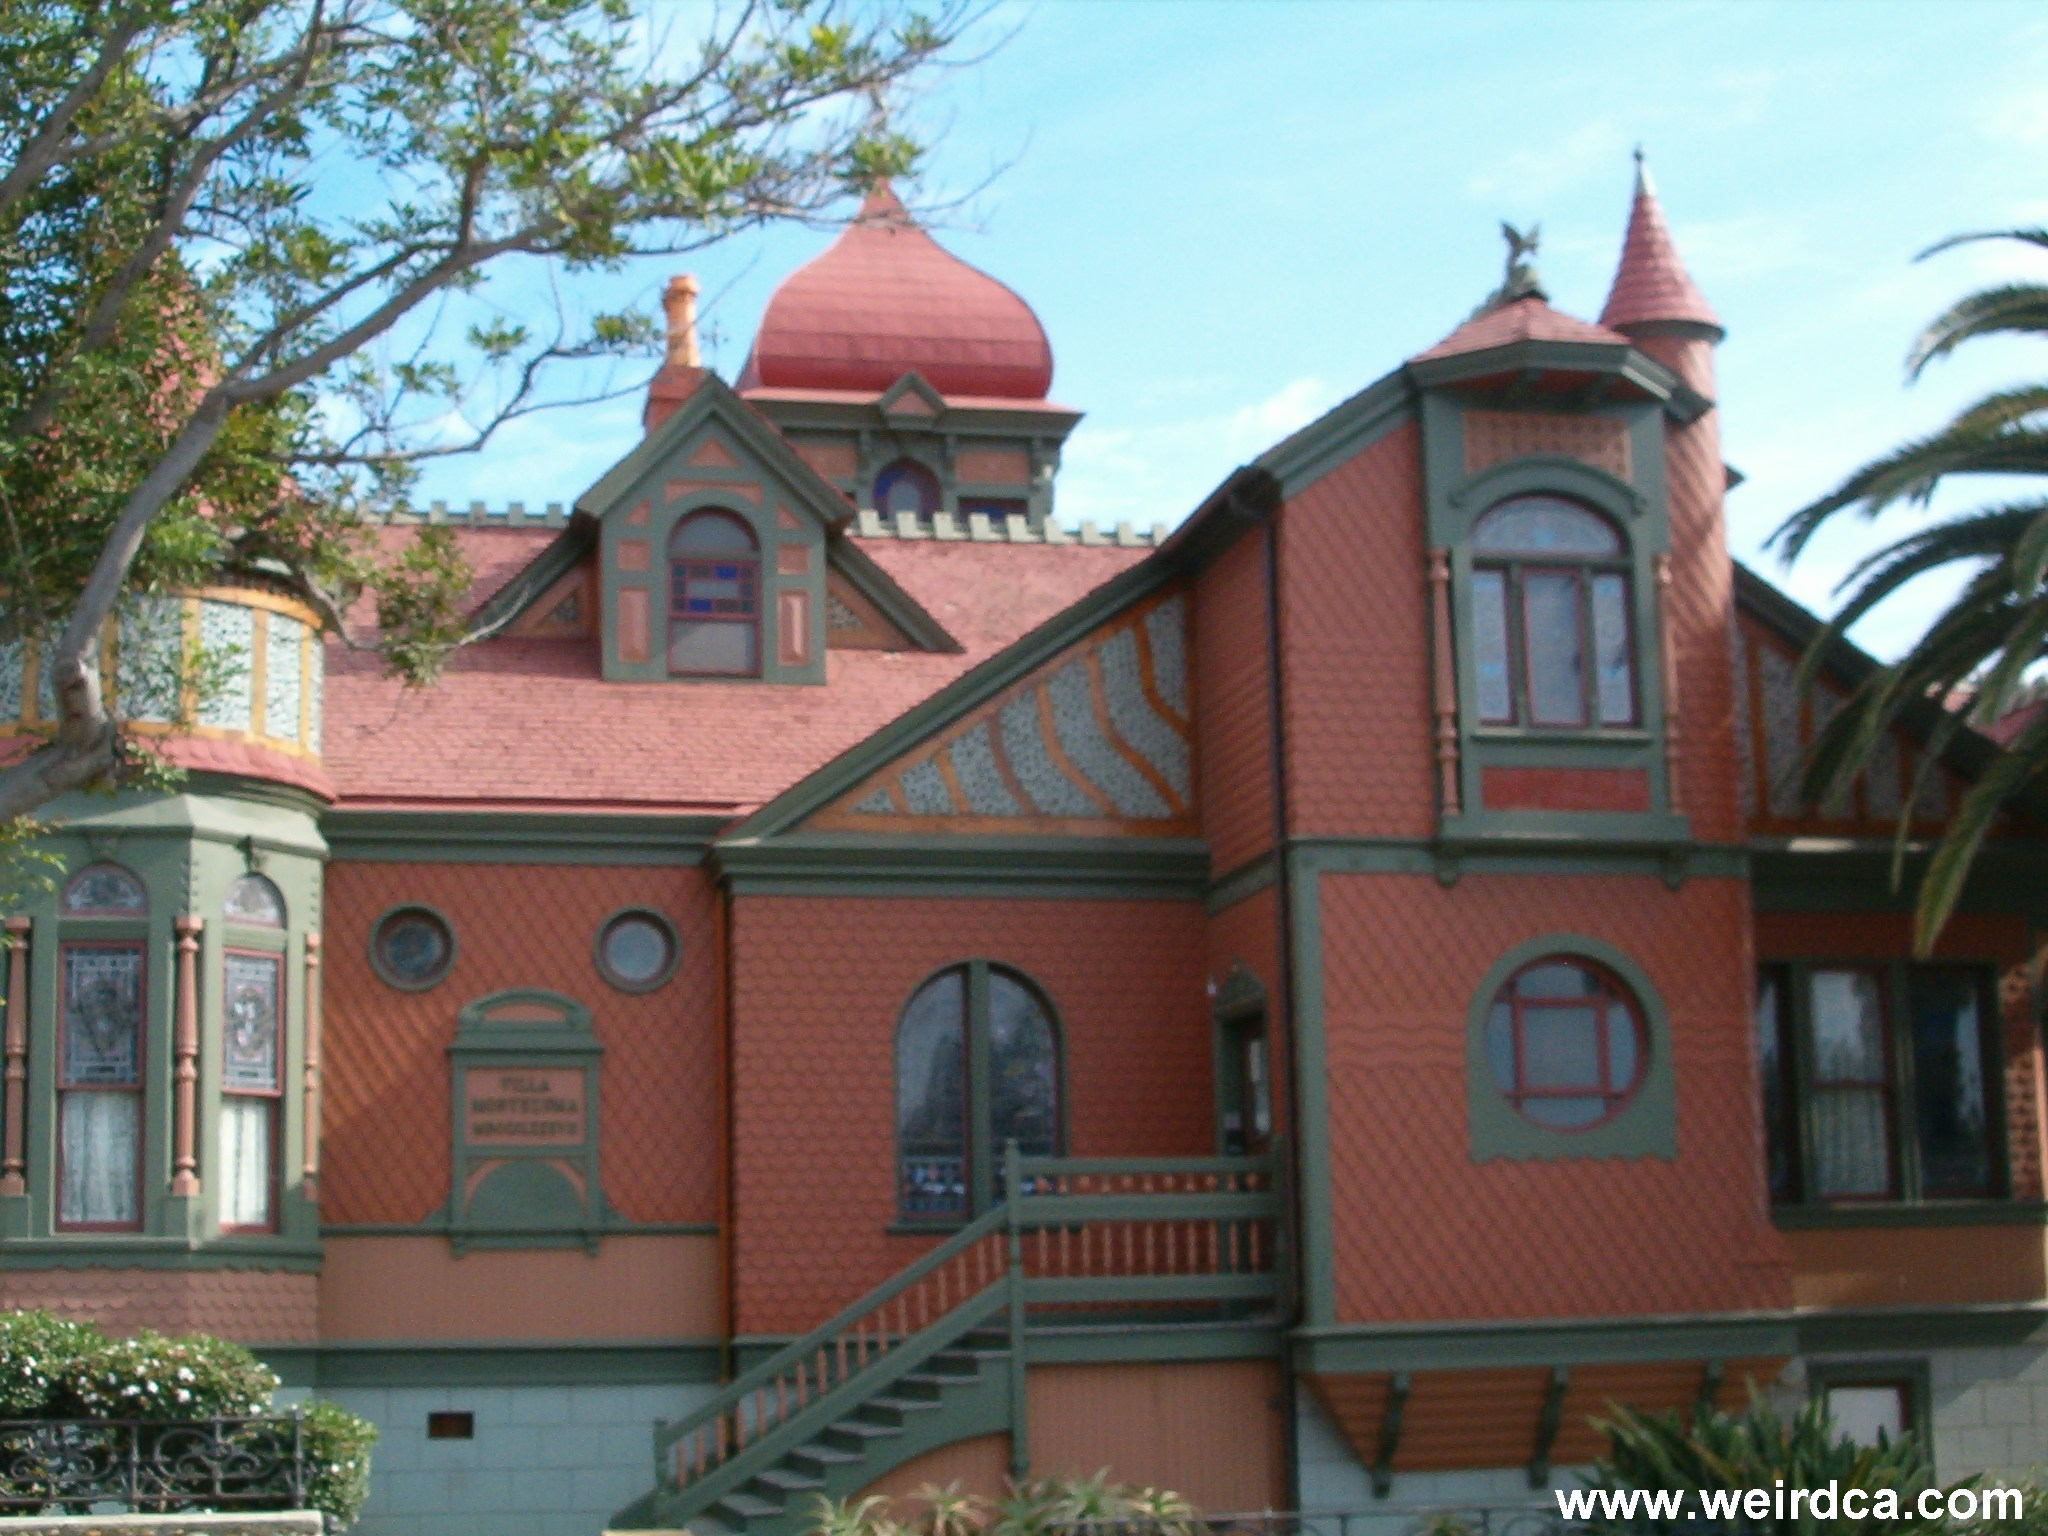 Jesse Shepherd had the Stately Villa Montezuma built in 1887